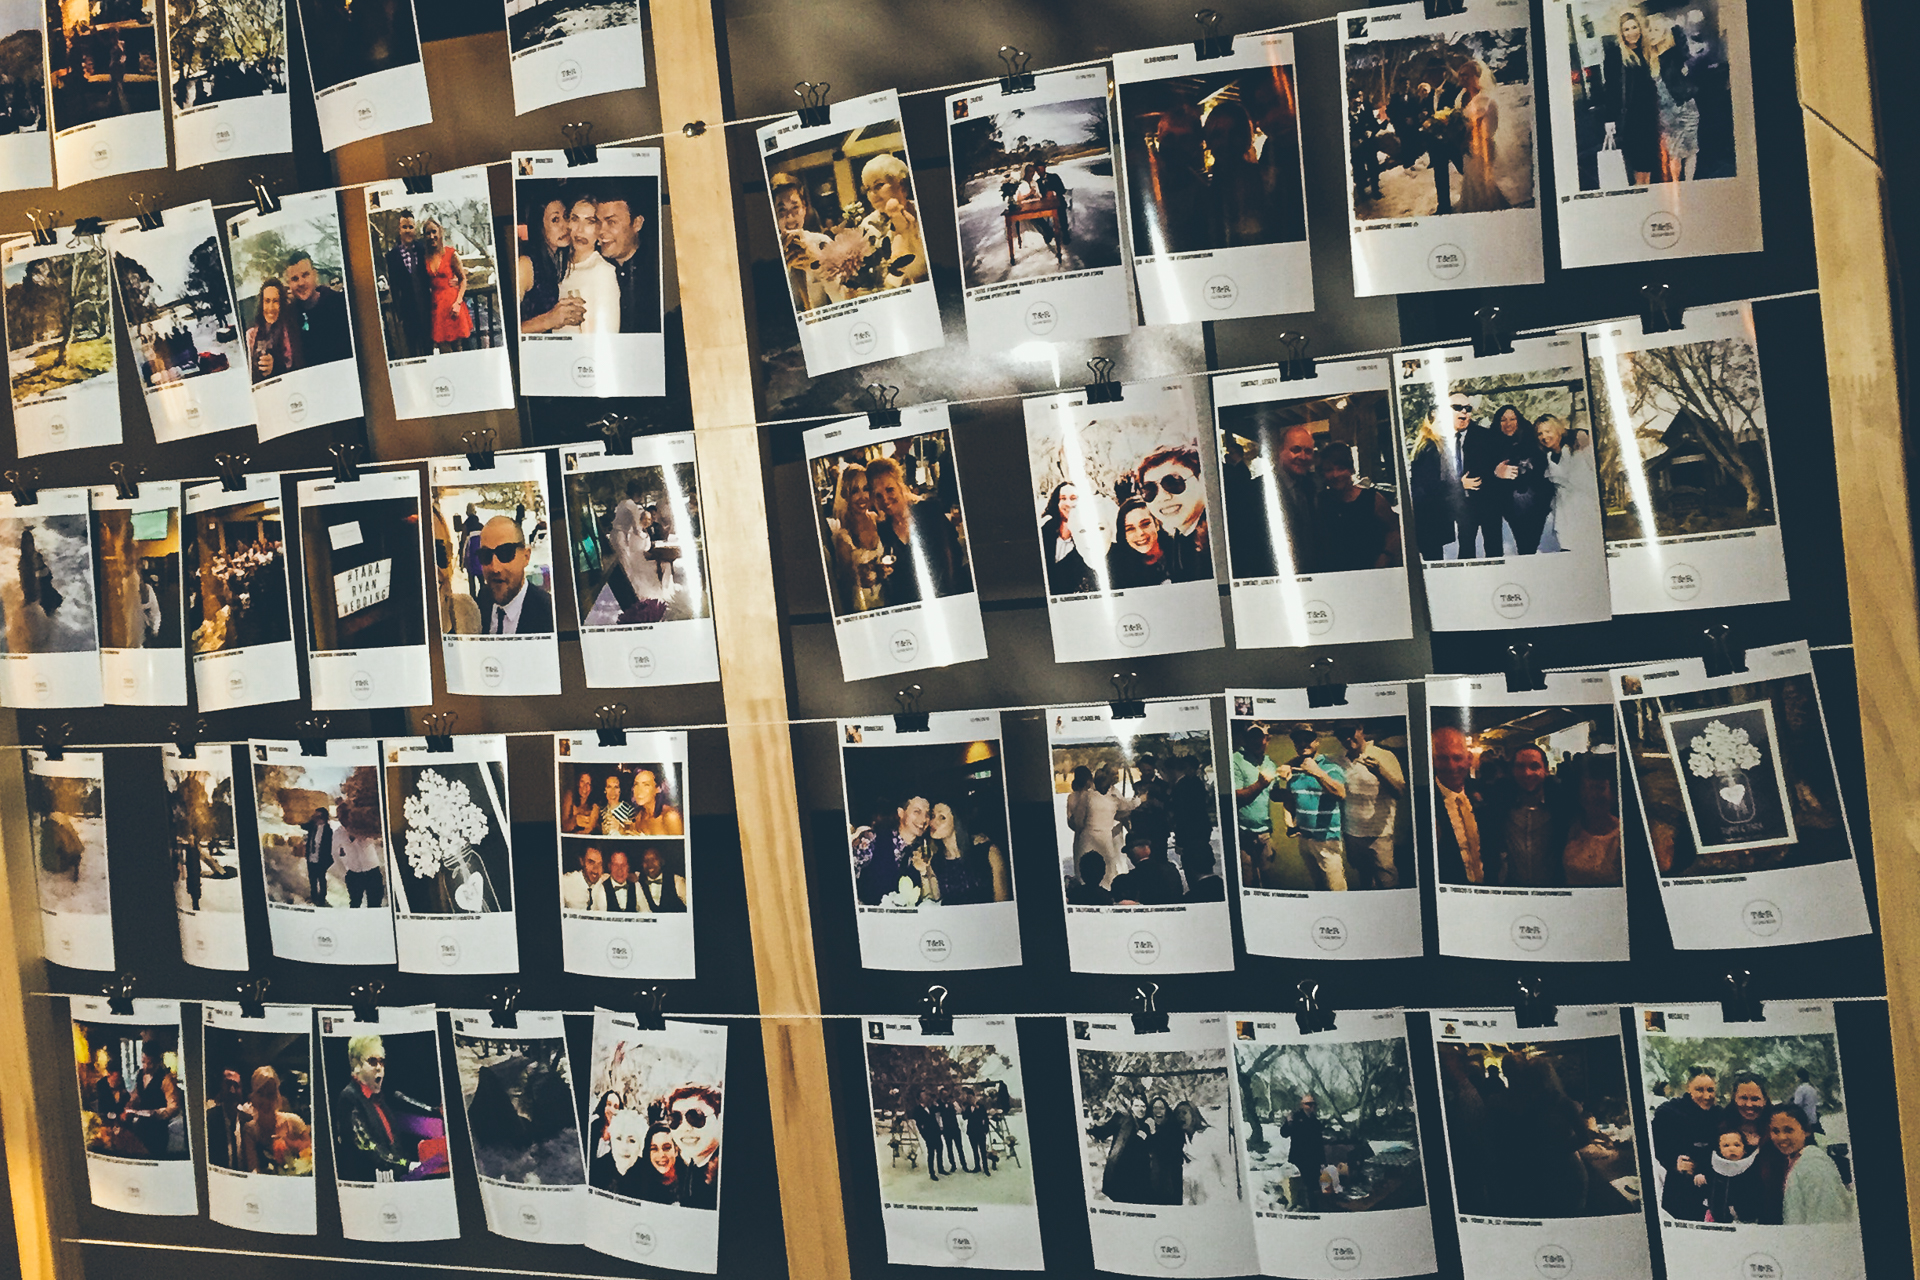 3. THE HASHTAG LAB prints your guests' photos automatically!